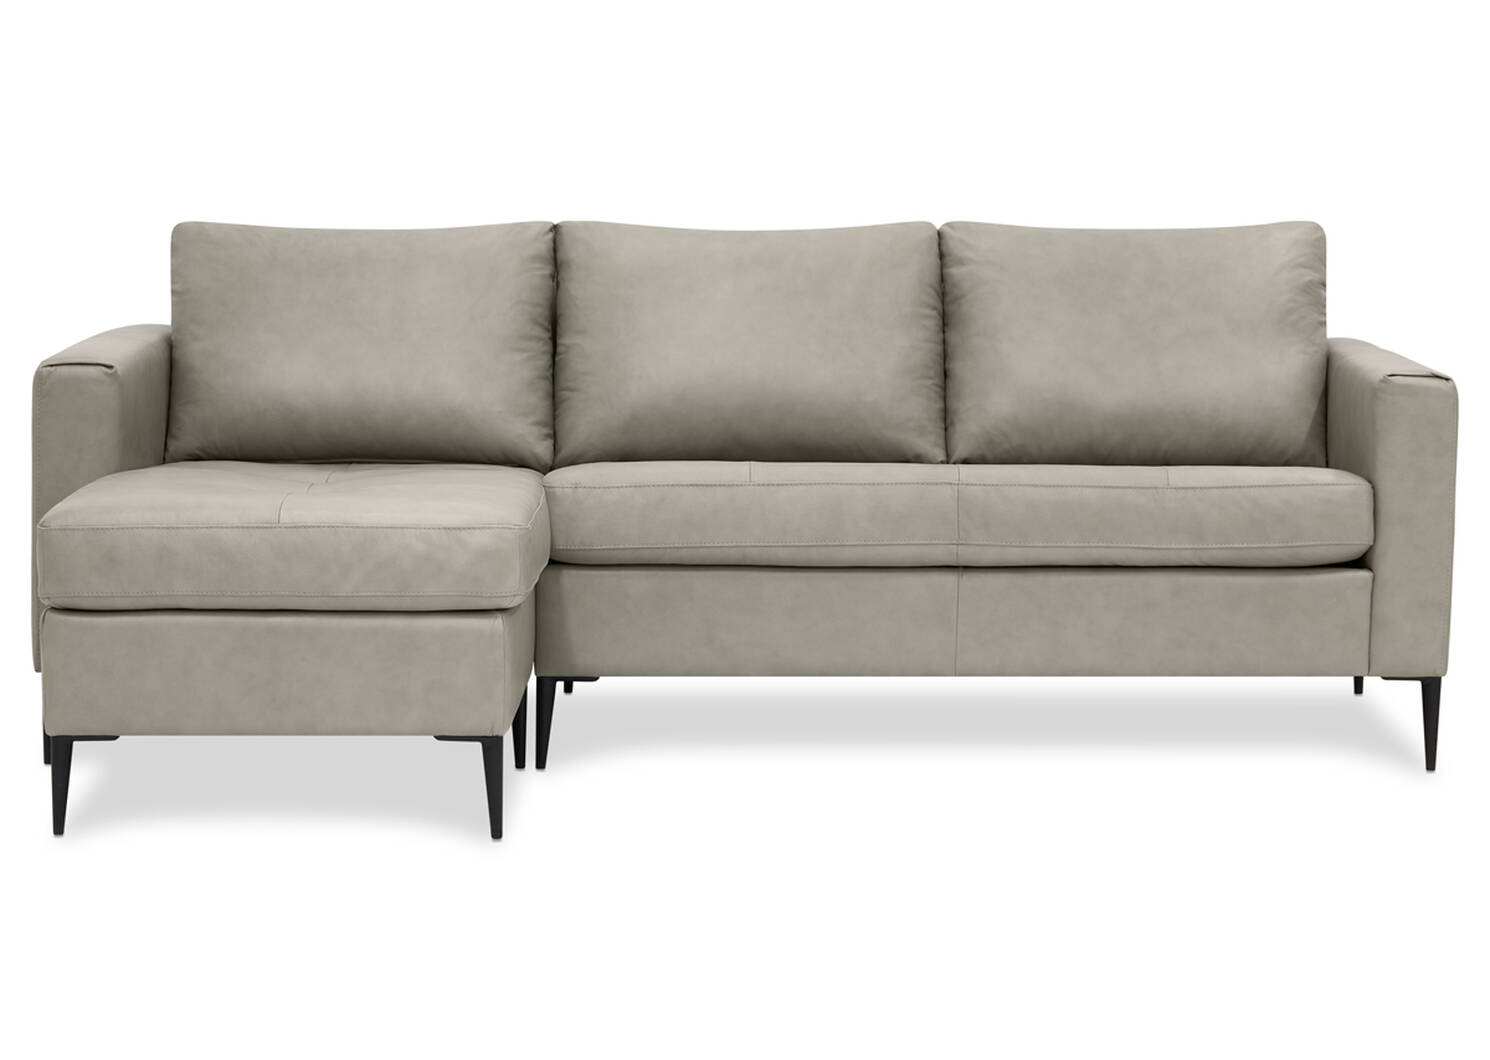 Lucca Custom Leather Sofa Chaise